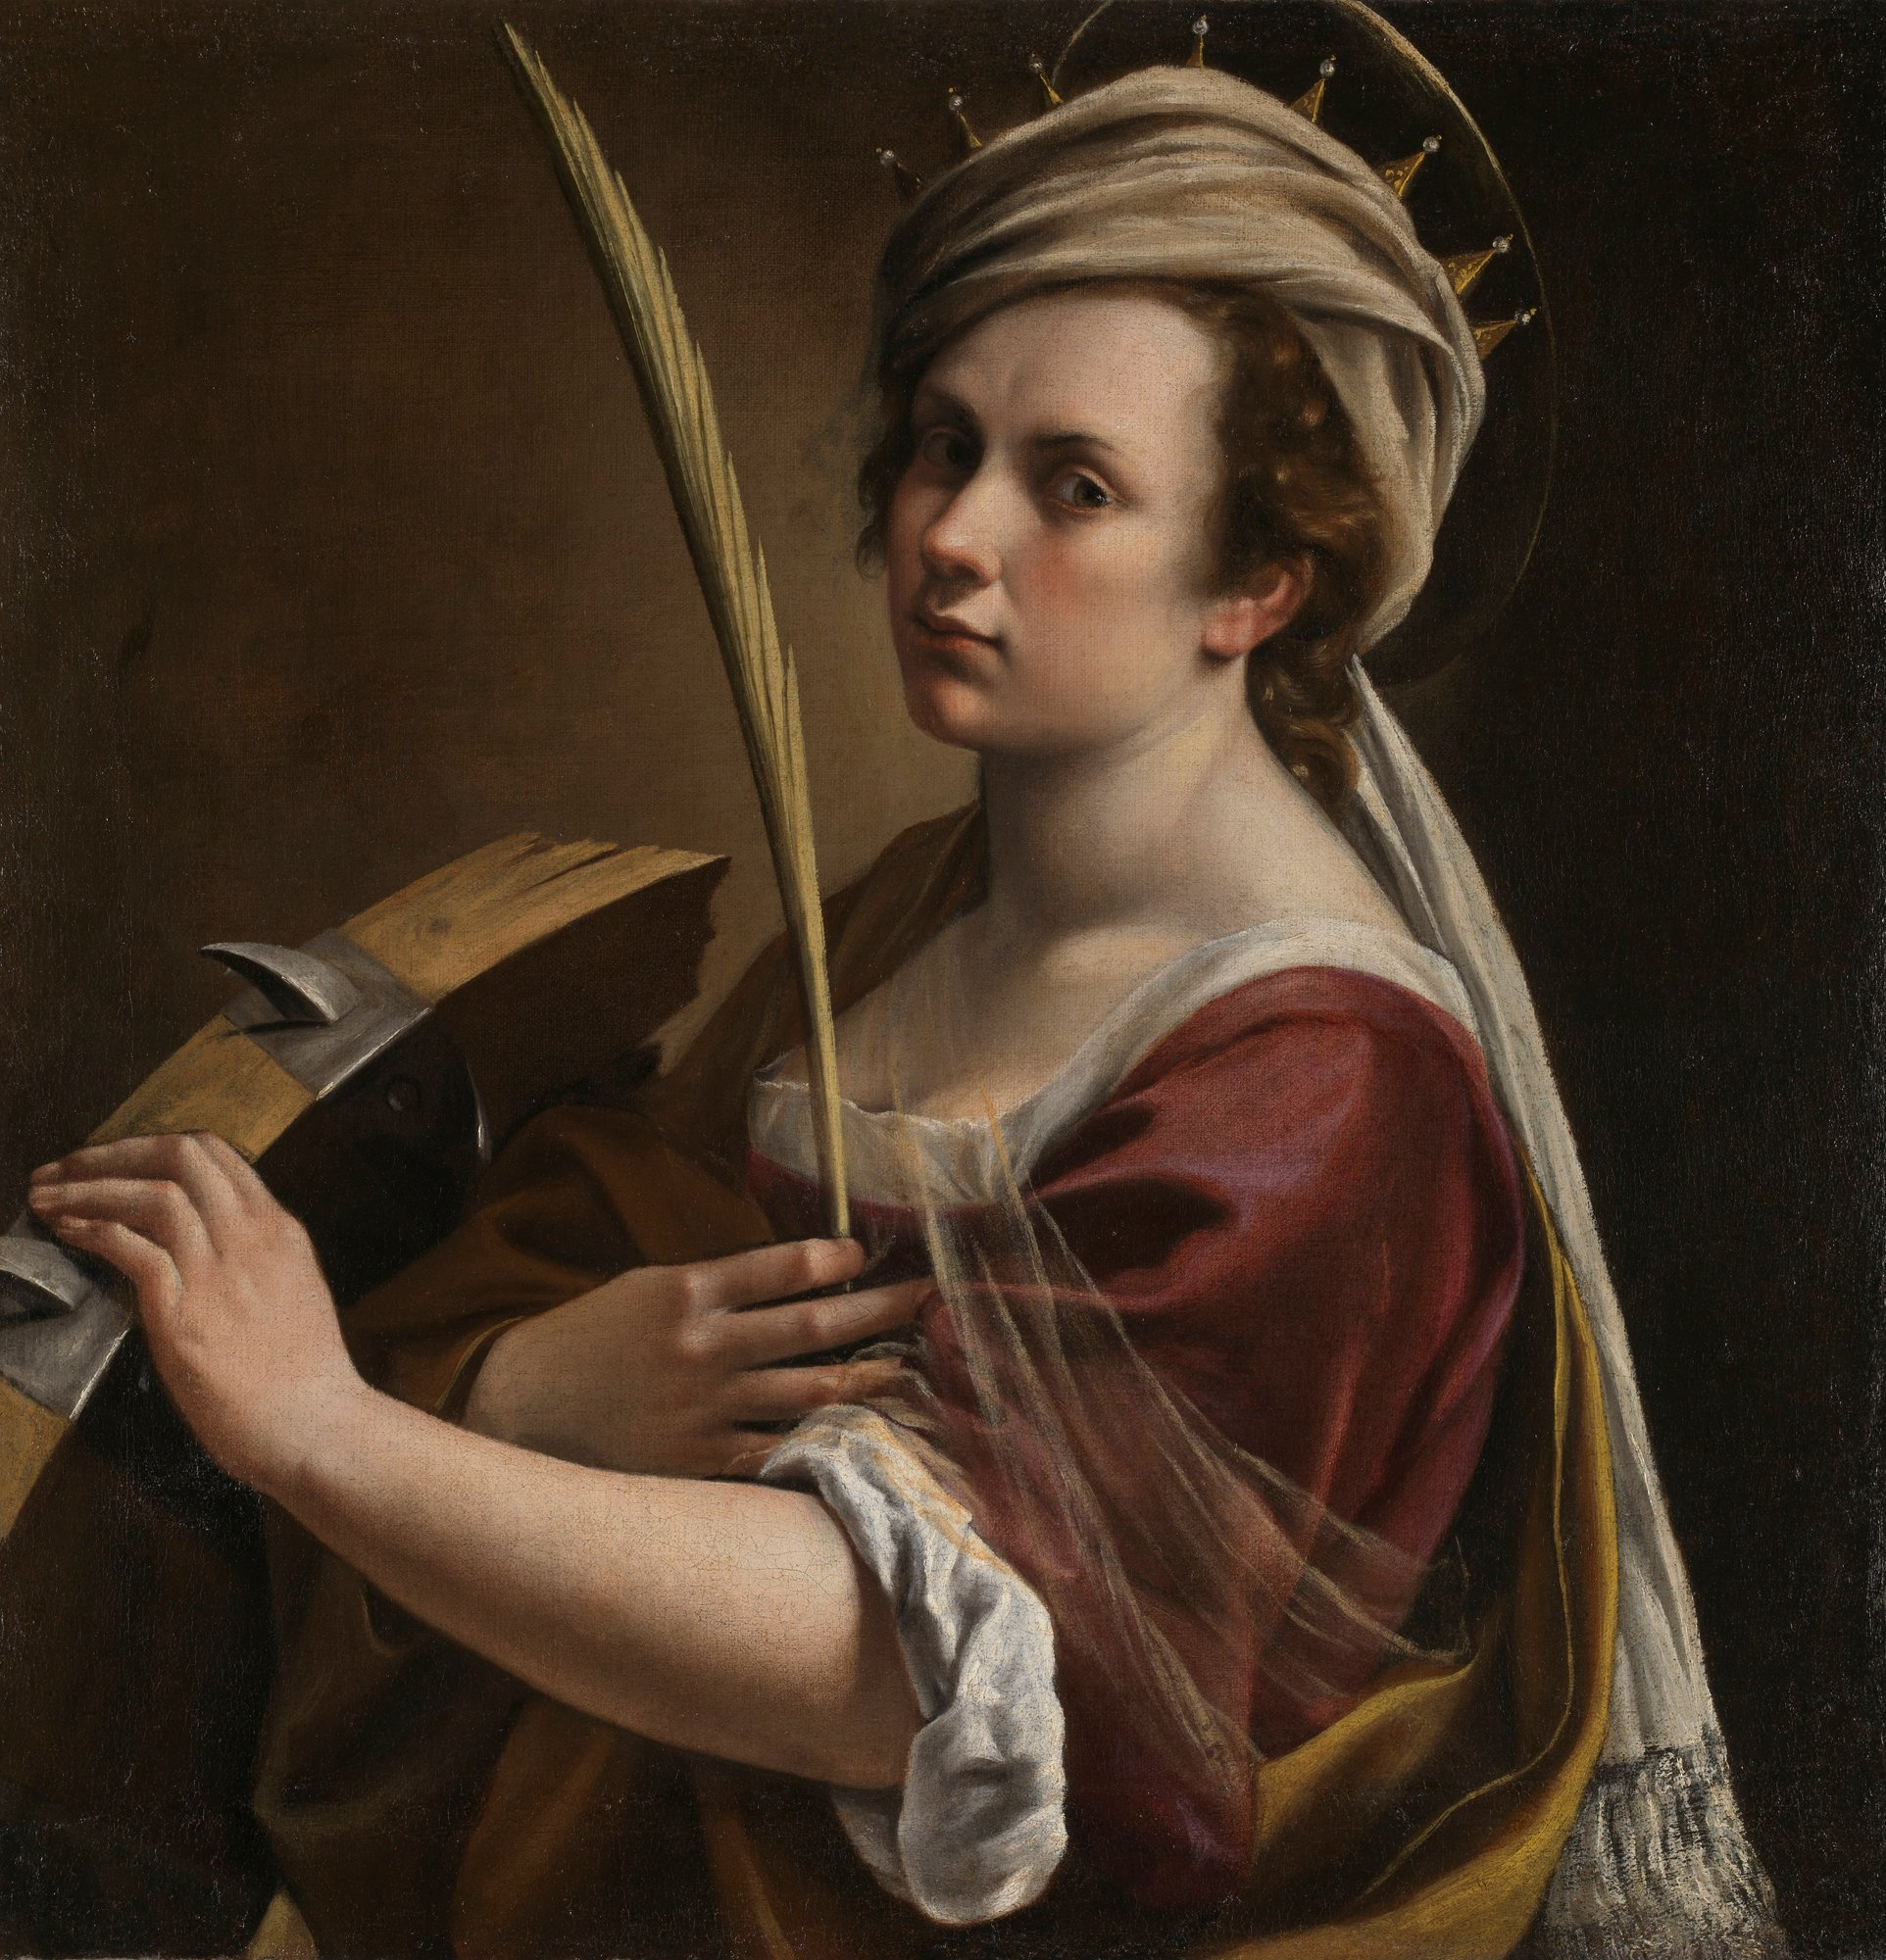 Painter and pioneer: Artemisia at The National Gallery